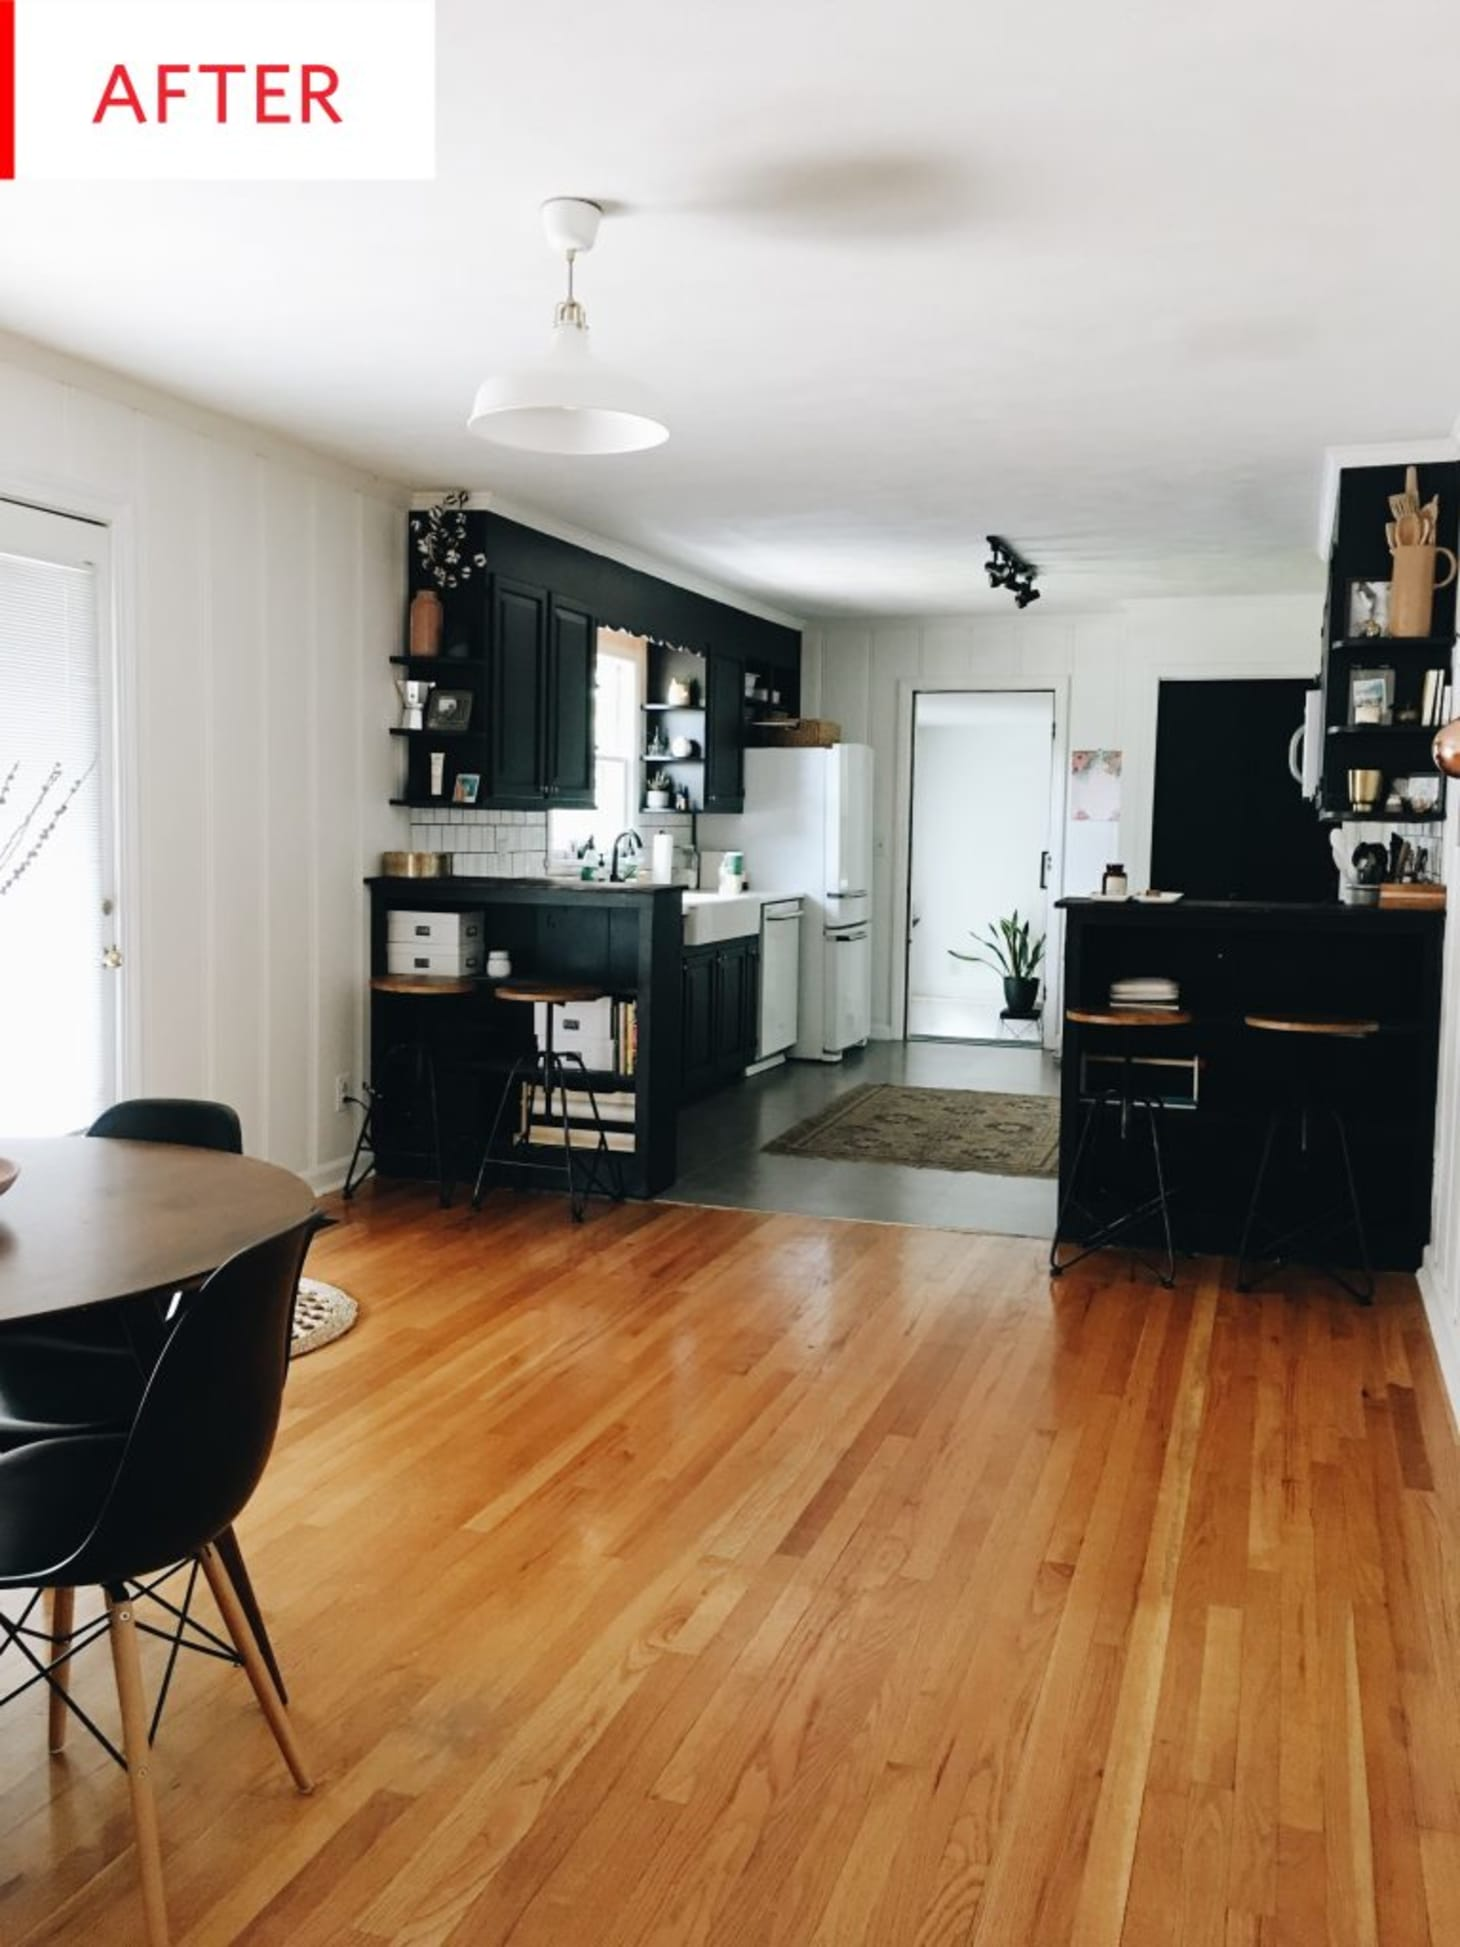 Kitchens With Wood Paneling: Before And After: Black And White Paint Updates A Kitchen